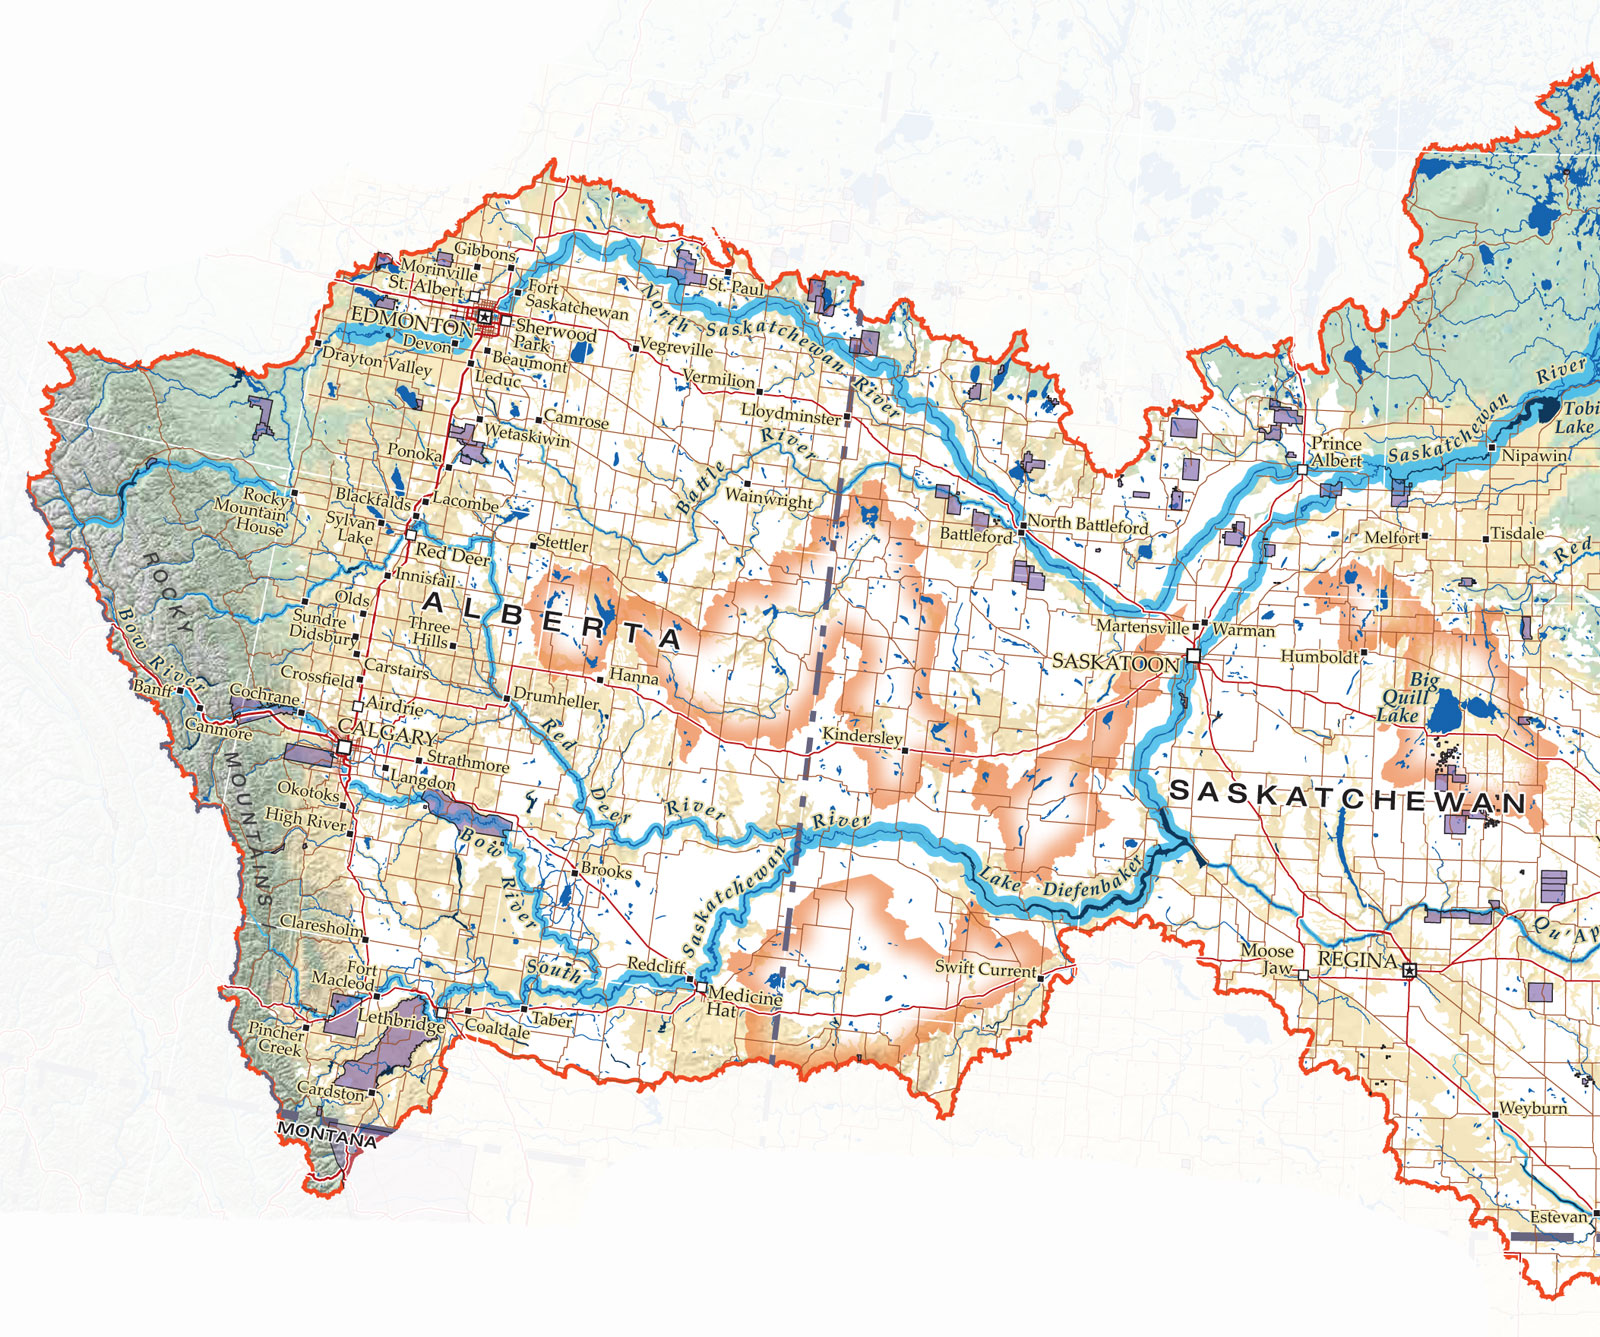 The best maps we published in 2016 | Canadian Geographic A Map Of Crossfield Canada on wainwright canada, grande prairie canada, cold lake canada, bentley canada, crowsnest pass canada, medicine hat canada, peace river canada, taber canada, beaverlodge canada, spruce grove canada, hinton canada, hardisty canada, lacombe canada, fort mcmurray canada,